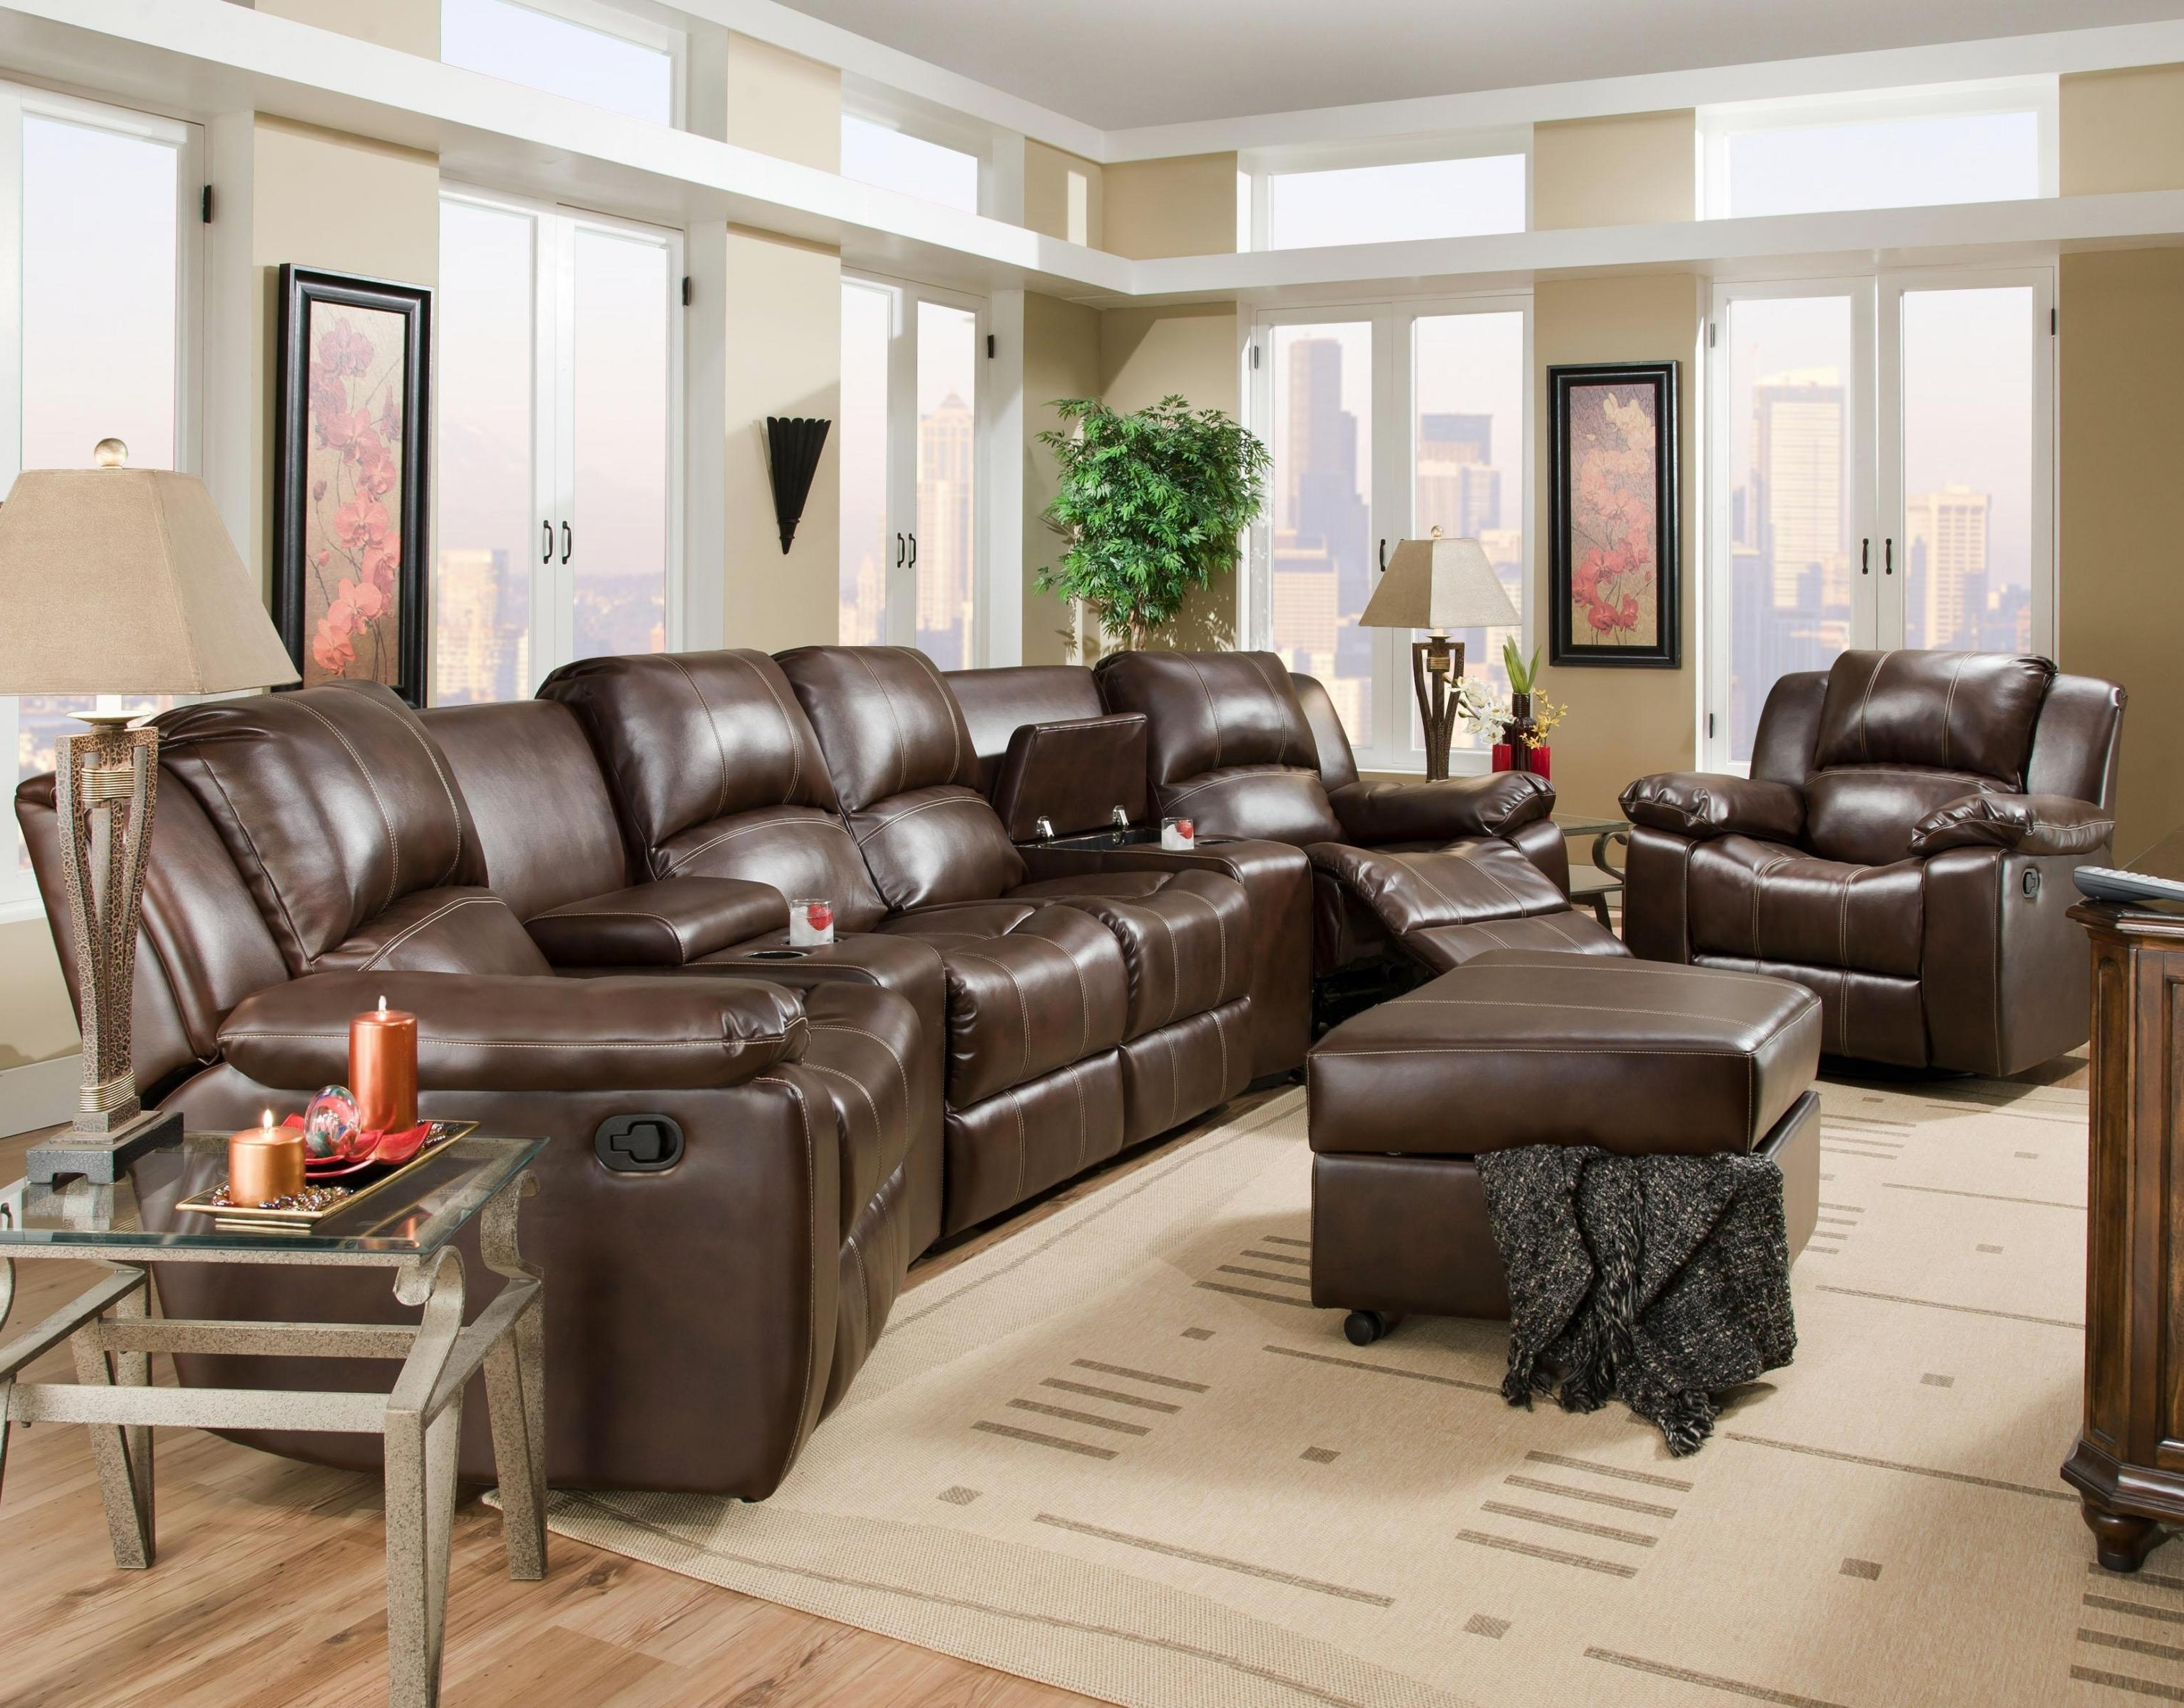 Belfort Furniture Reviews Reclining Sectional Sofas Washington Dc Intended For Most Popular Virginia Sectional Sofas (View 15 of 15)